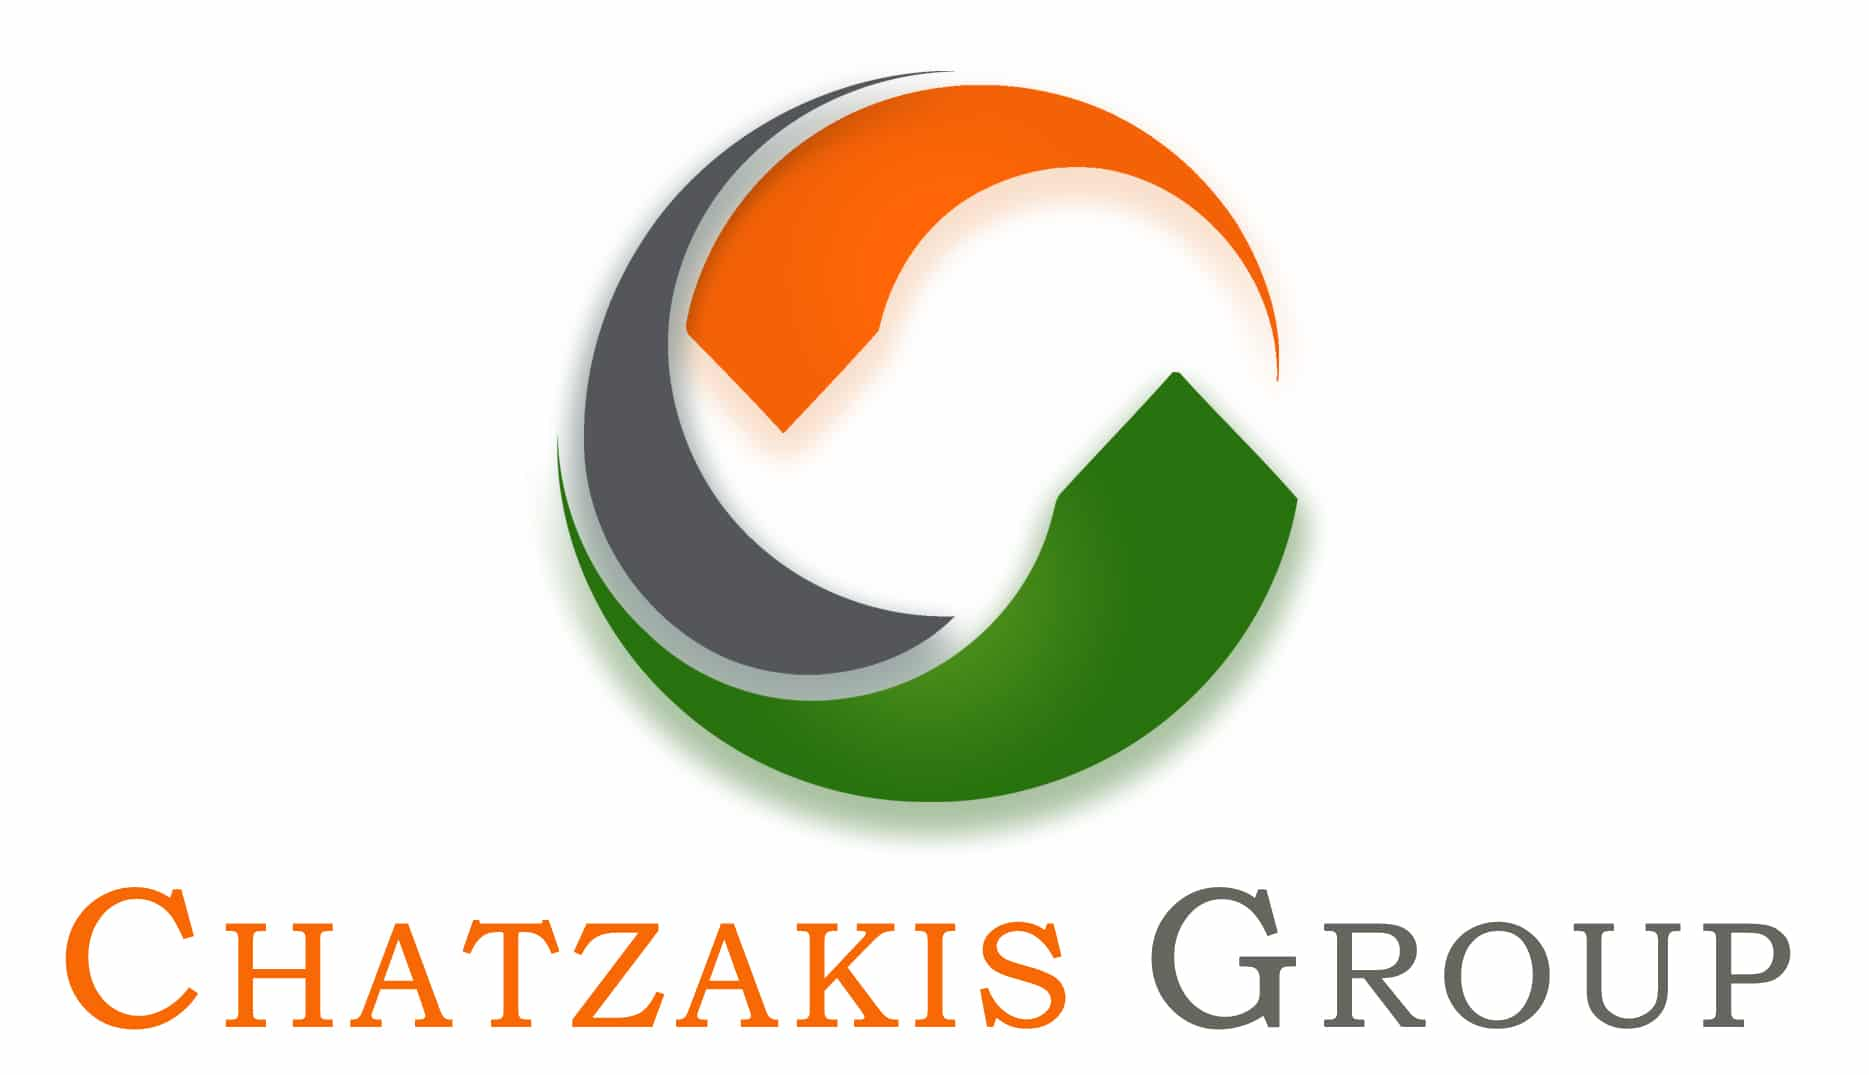 https://www.hotelastron.com/wp-content/uploads/Chatzakis-Group-Logo-2019-ENG-vertical.jpg